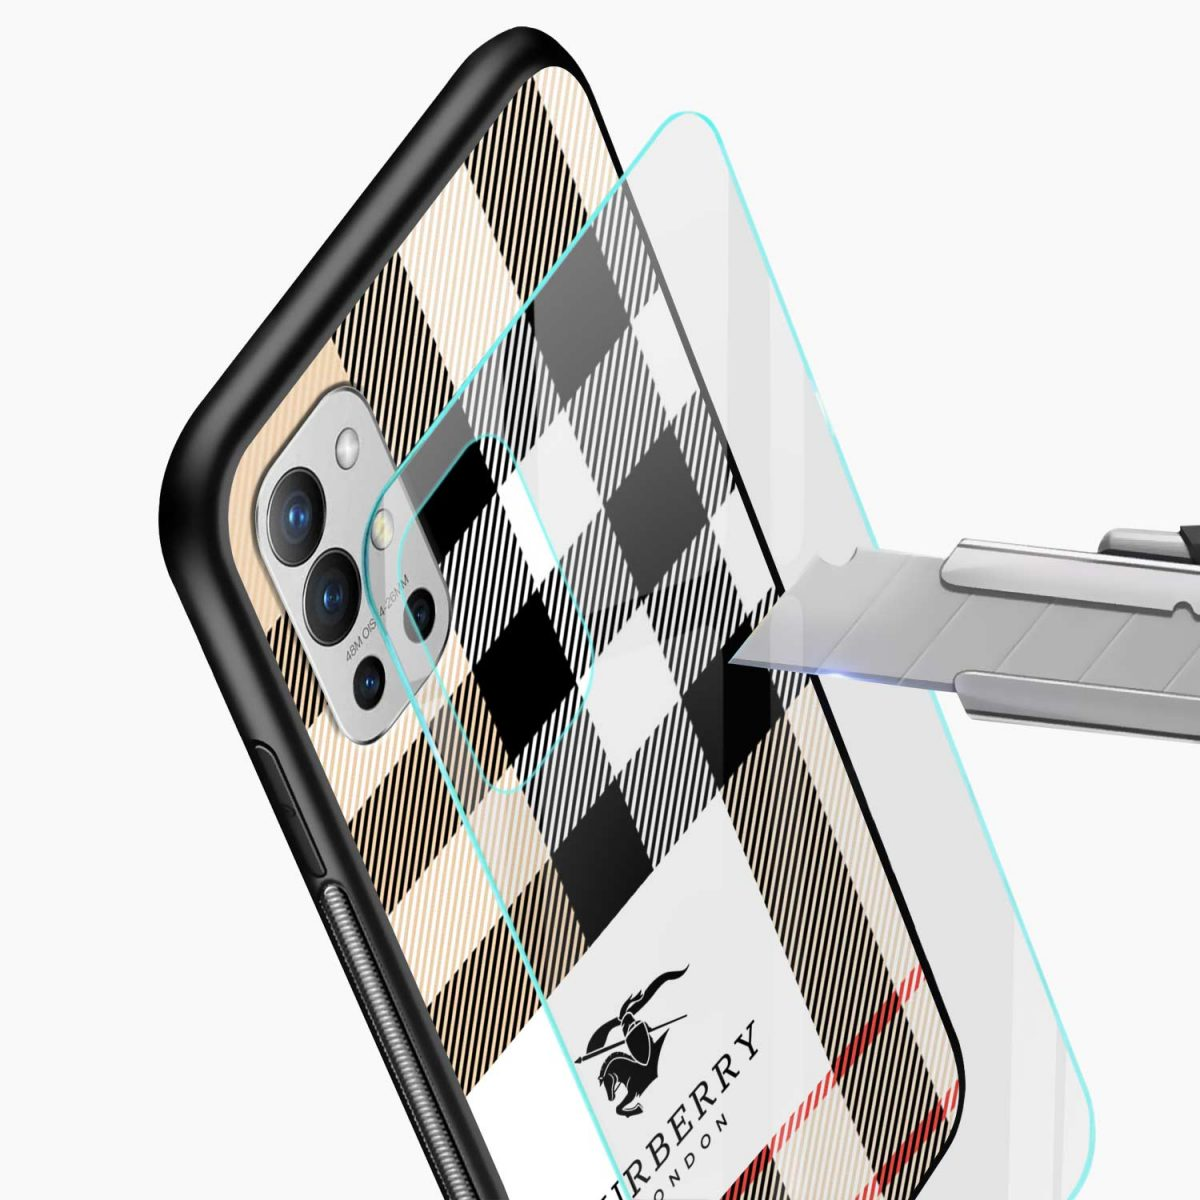 burberry cross lines pattern glass view oneplus 9r back cover